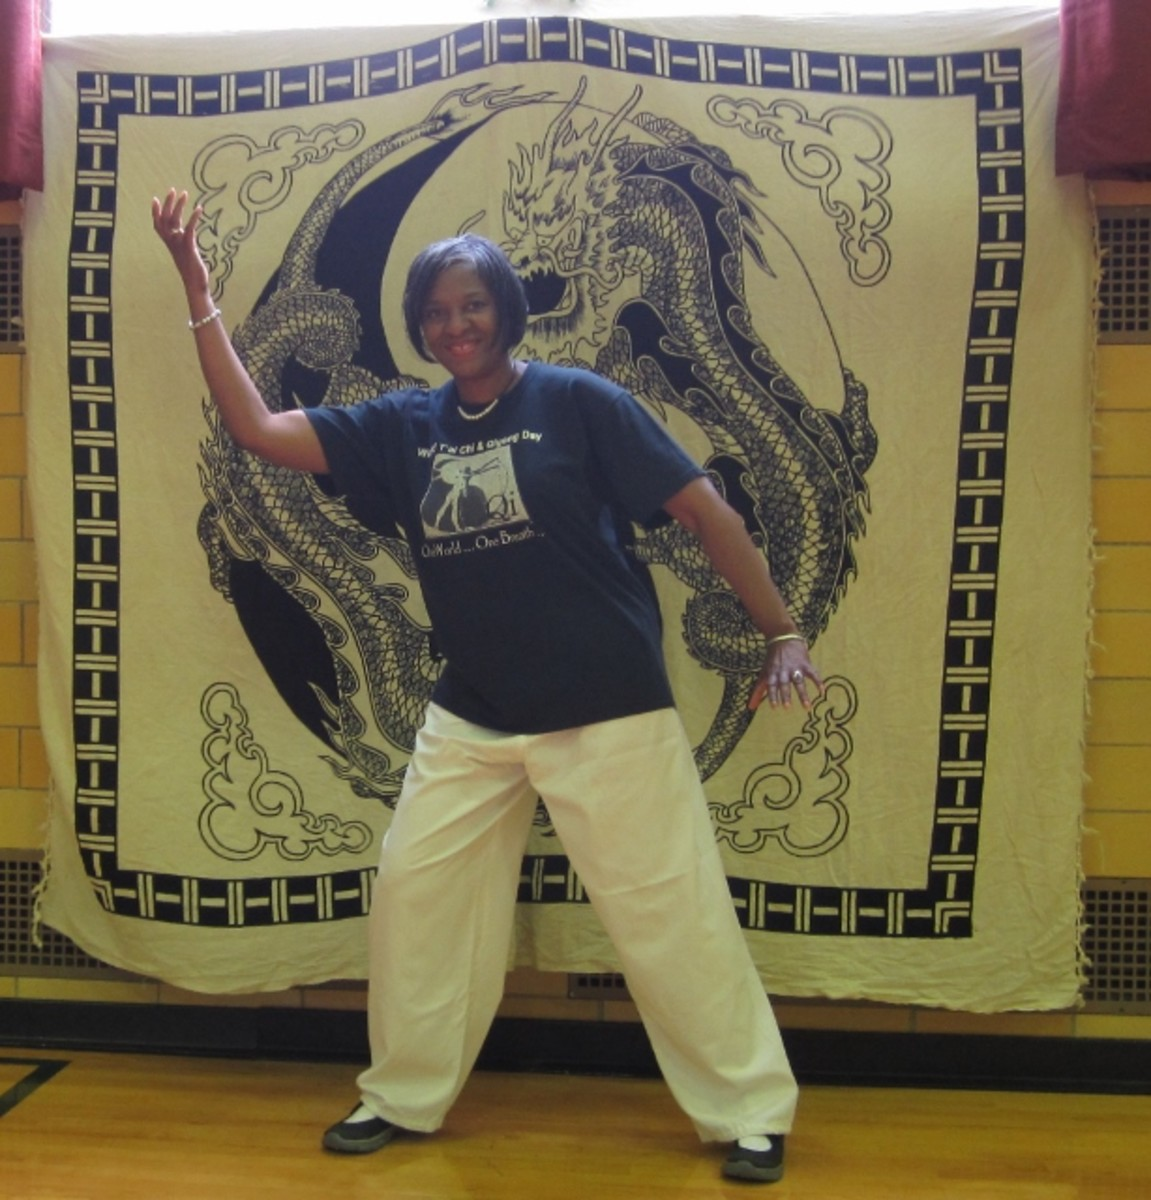 Practicing my tai chi for the camera at our annual World Tai Chi & Qi Gong Day at the Greenbelt Recreation Center, Greenbelt, MD.